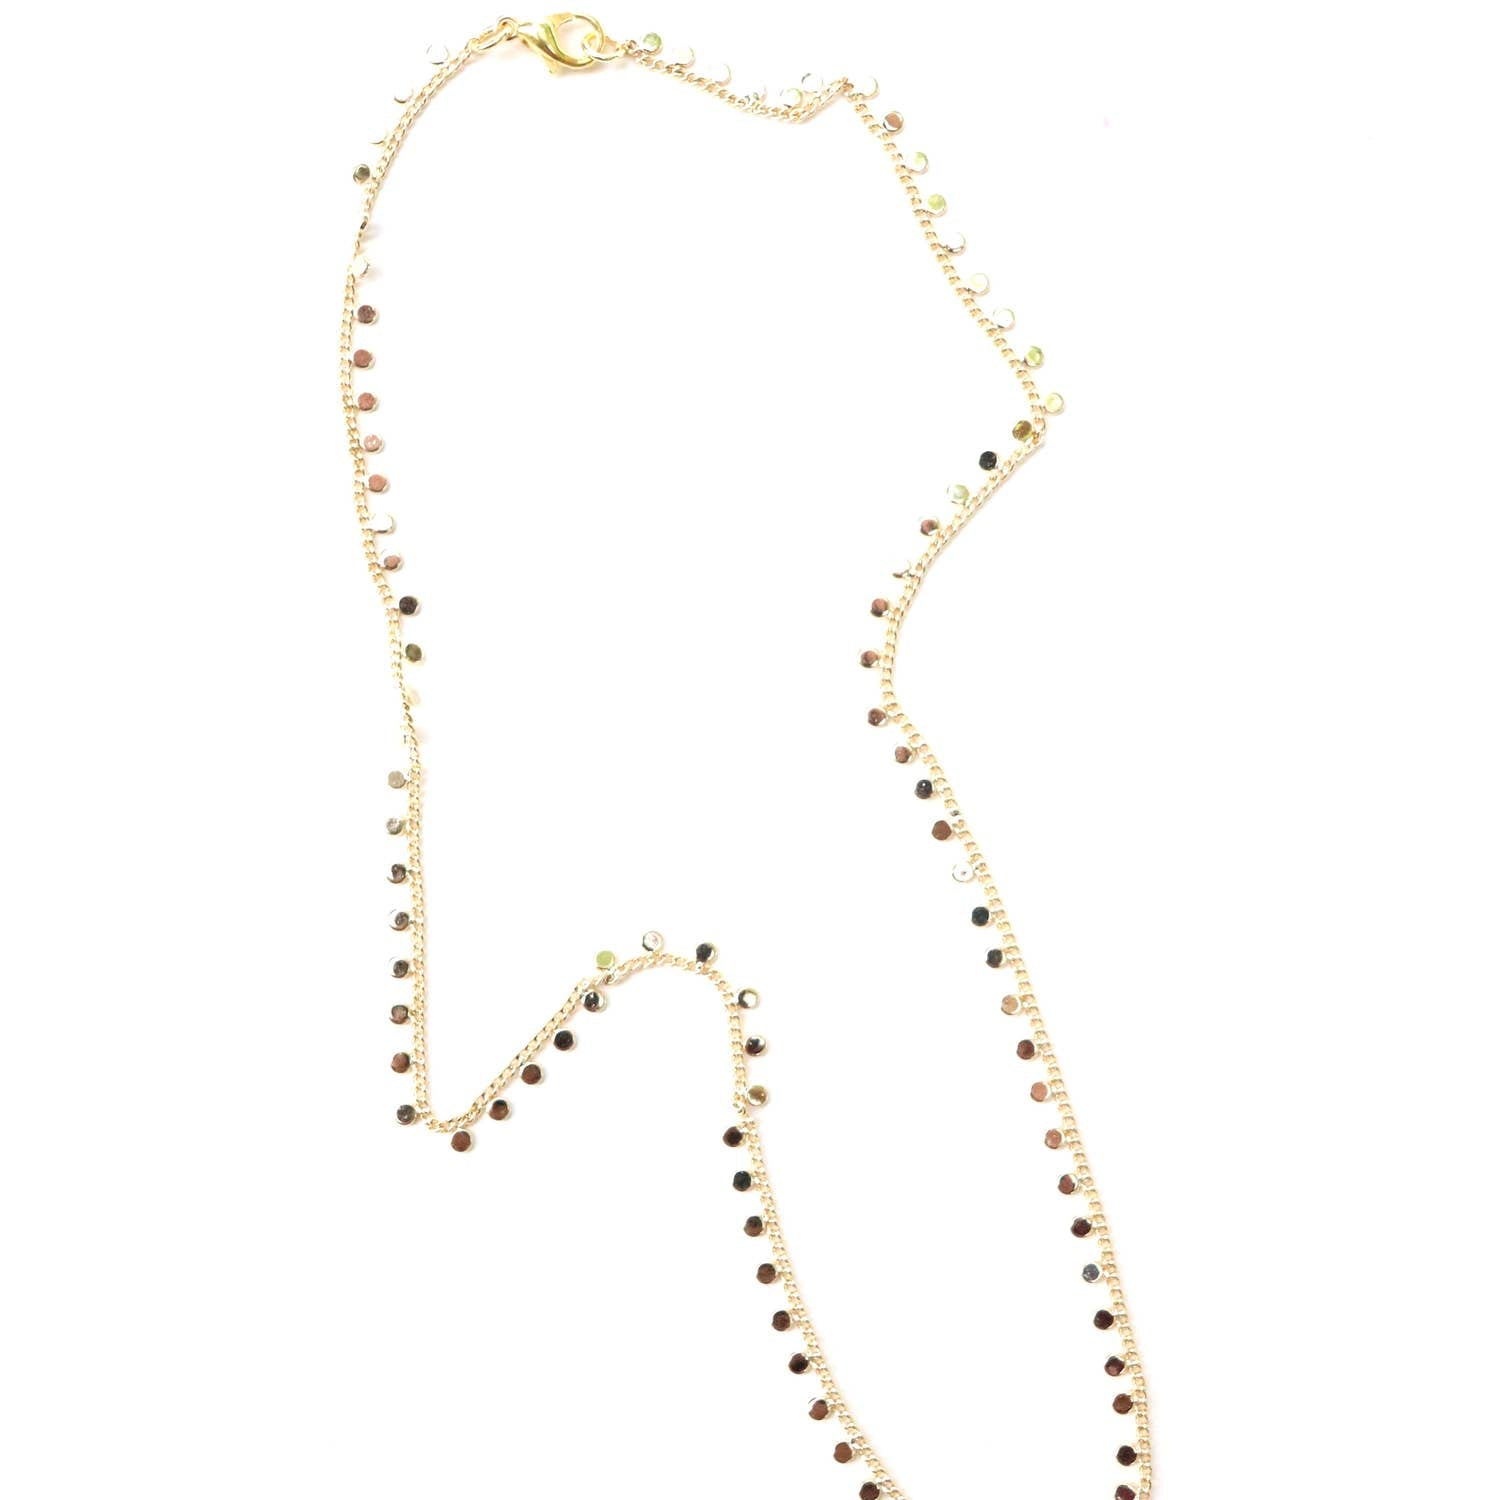 Alice Dainty Gold Chain